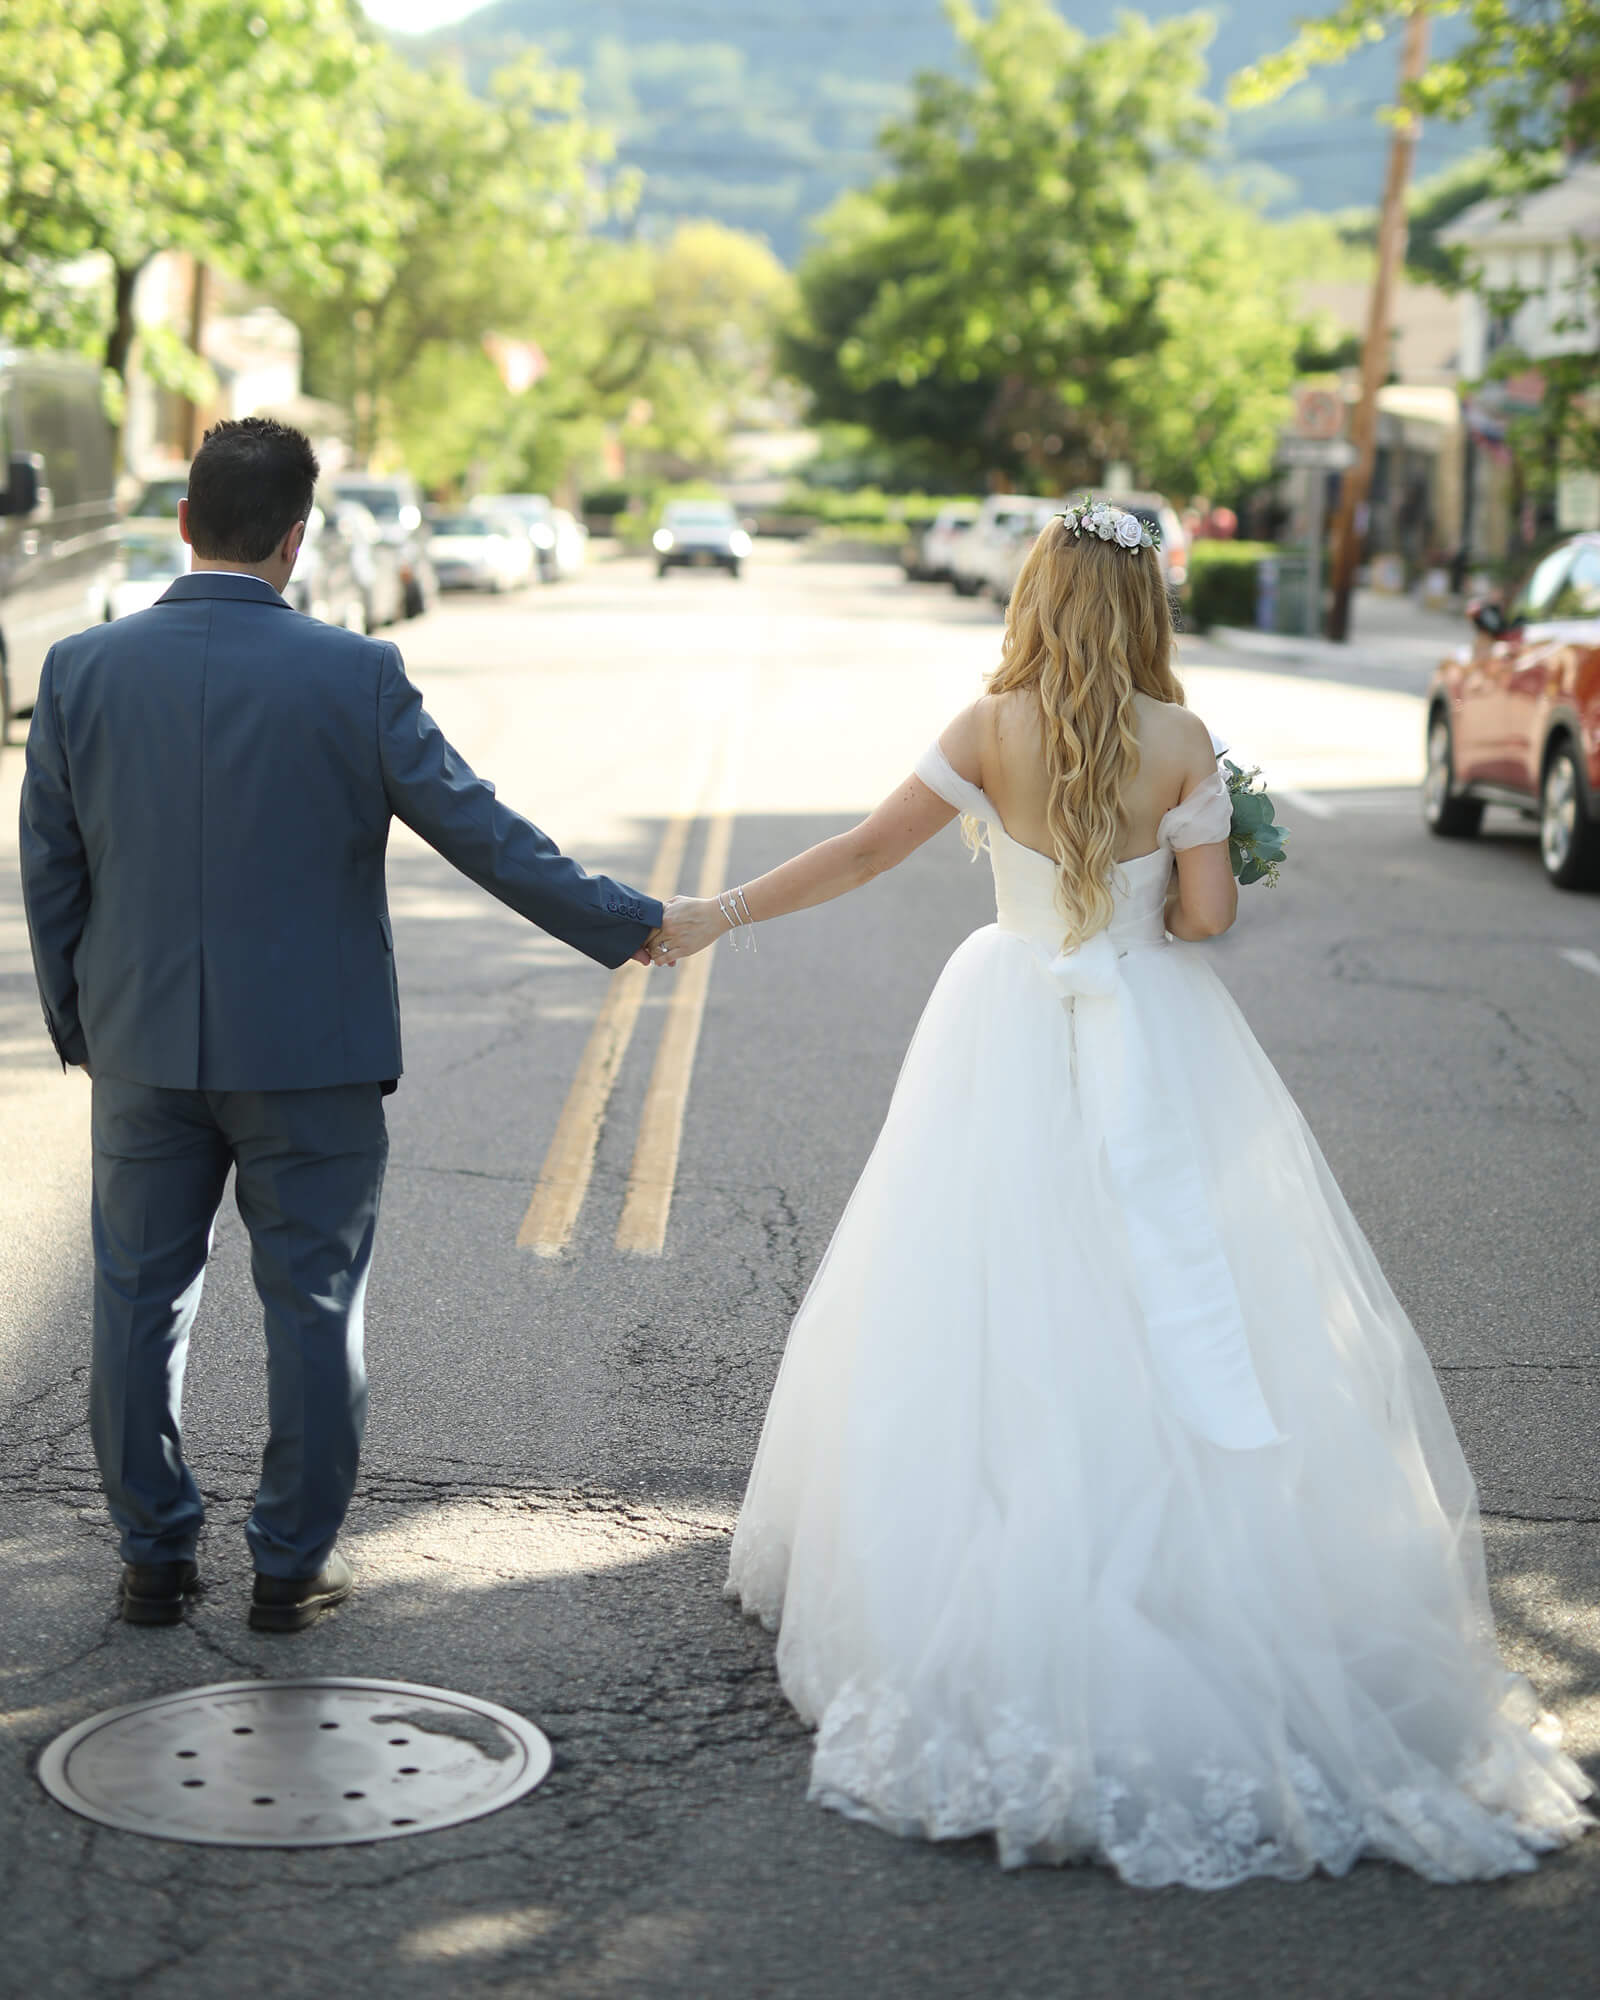 Holding hands and walk into the next chapter of your happiness together